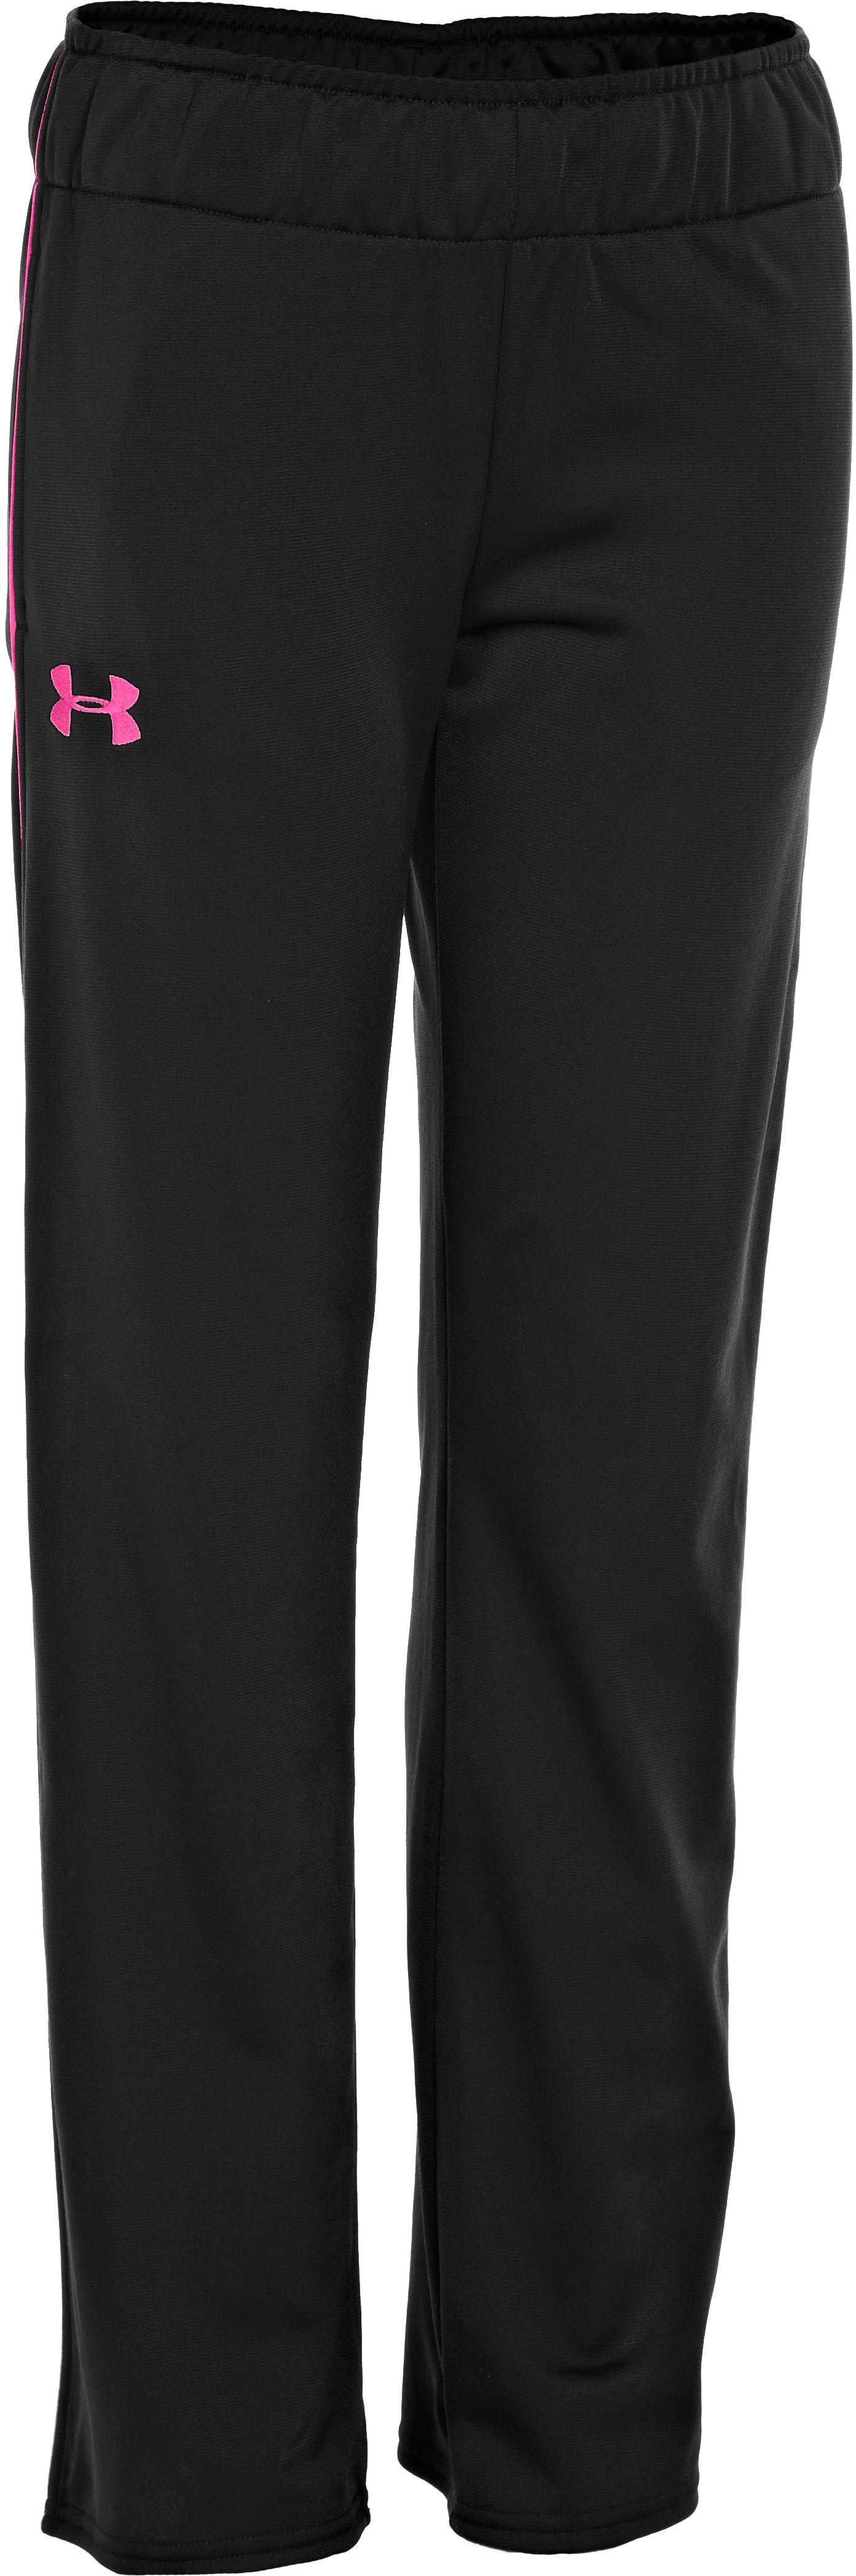 Girls' UA Pant, Black